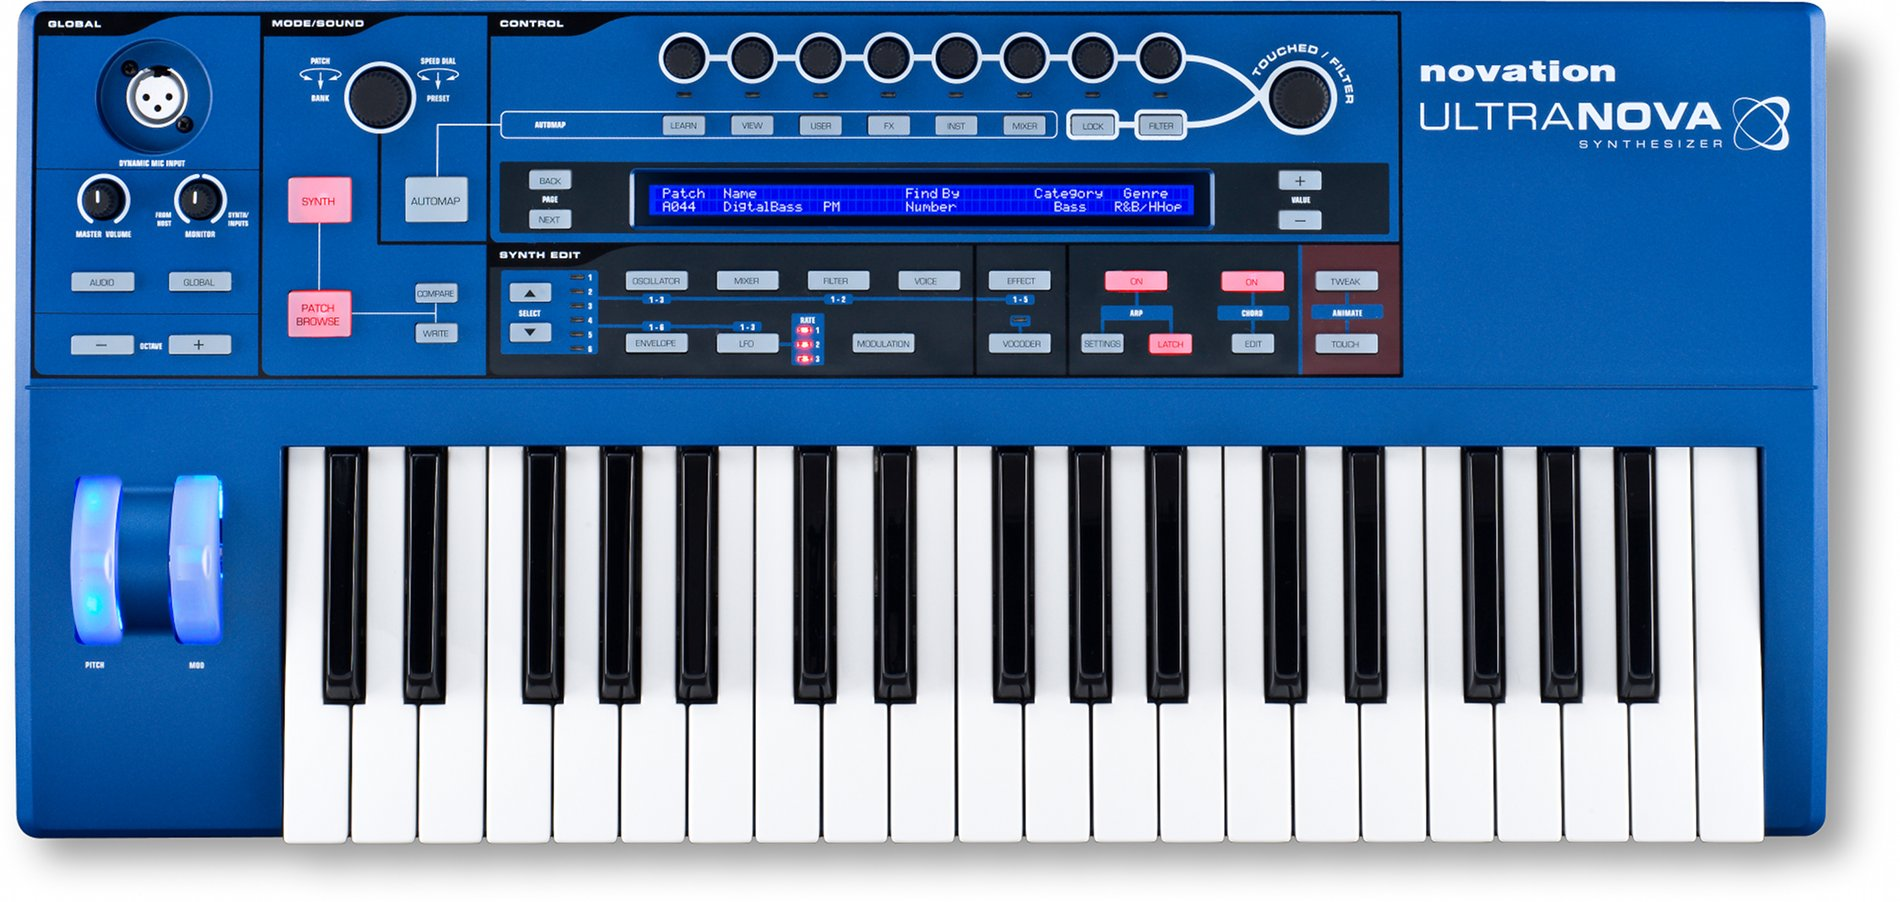 novation-ULTRANOVA-0.jpg